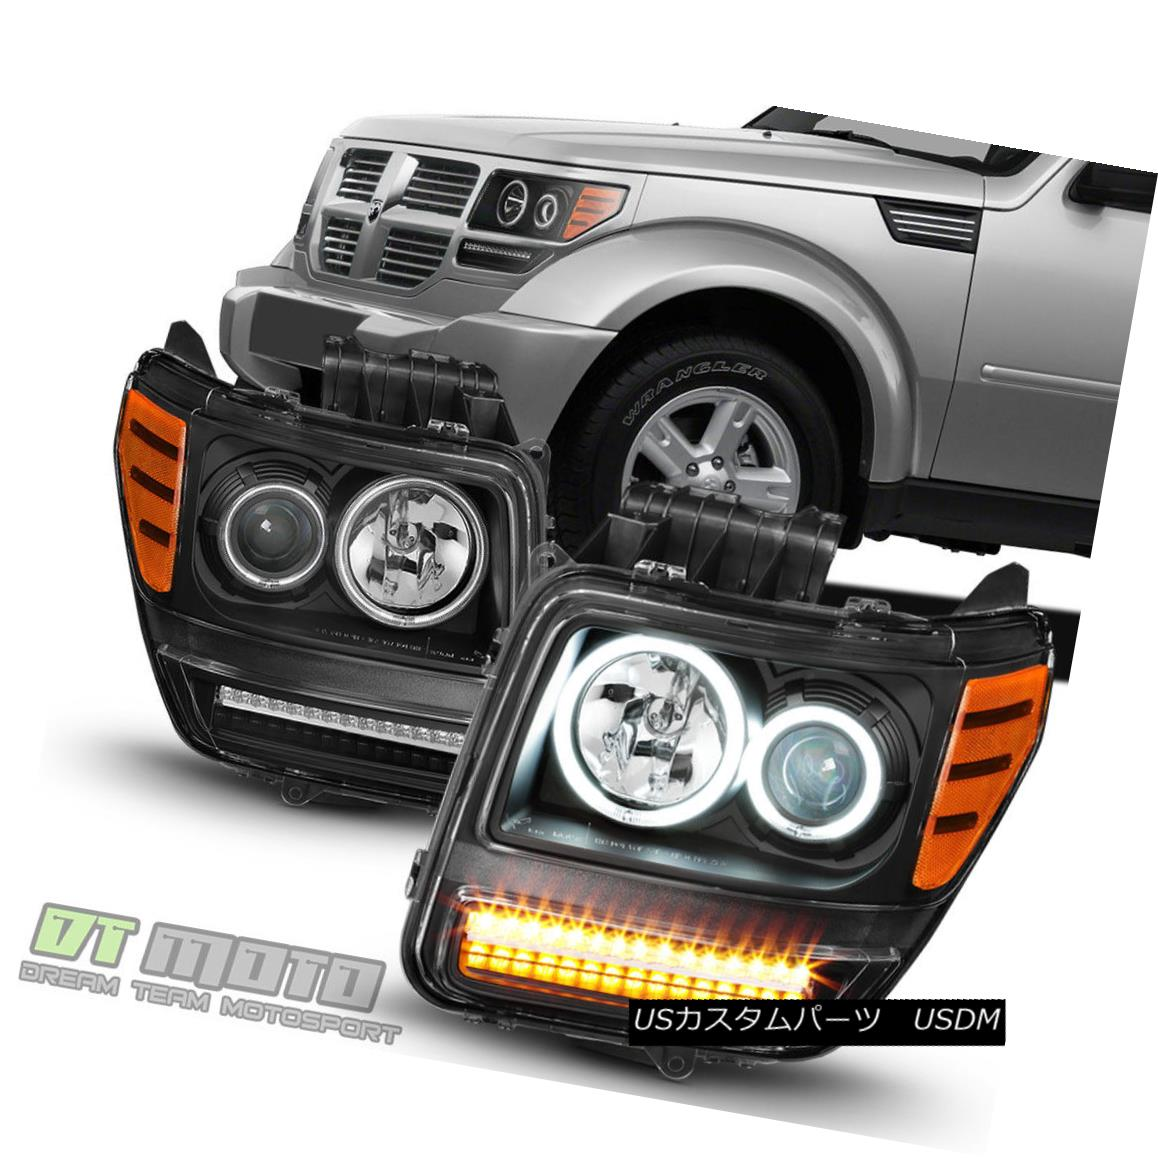 ヘッドライト Blk 2007-2012 Dodge Nitro LED Signal Parking Dual CCFL Halo Projector Headlights Blk 2007-2012 Dodge Nitro LEDシグナルパーキングデュアルCCFL Haloプロジェクターヘッドライト